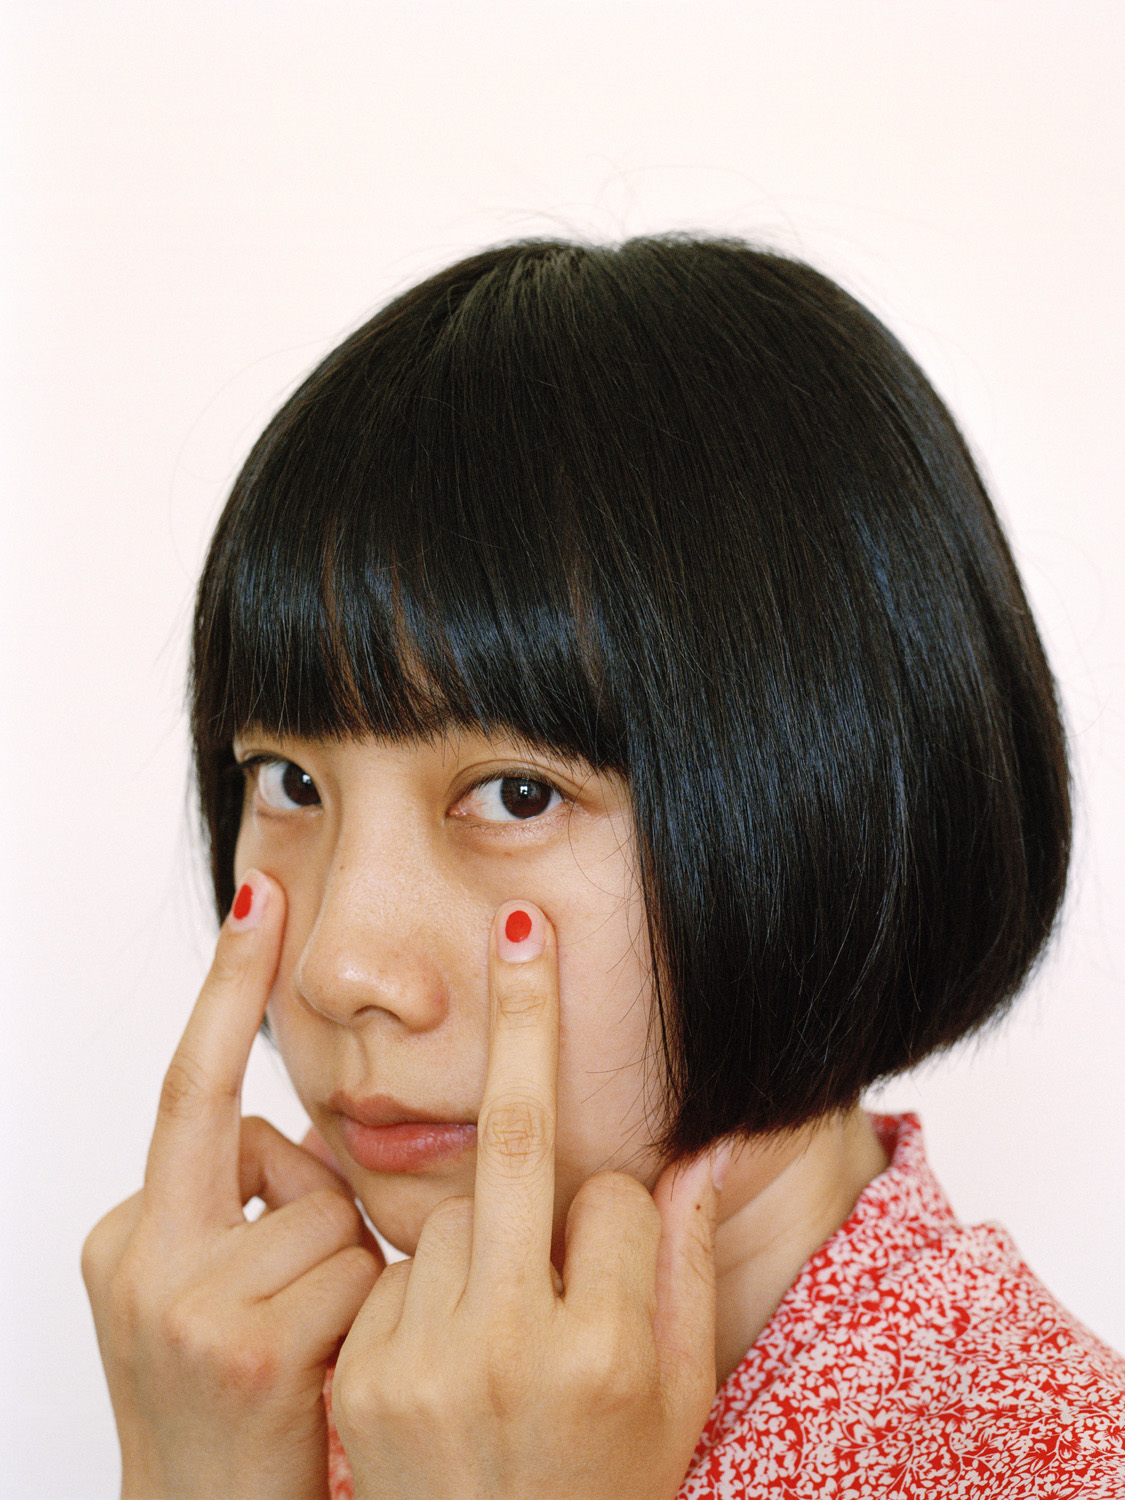 Pixy Liao,  Red Nails  (2014)